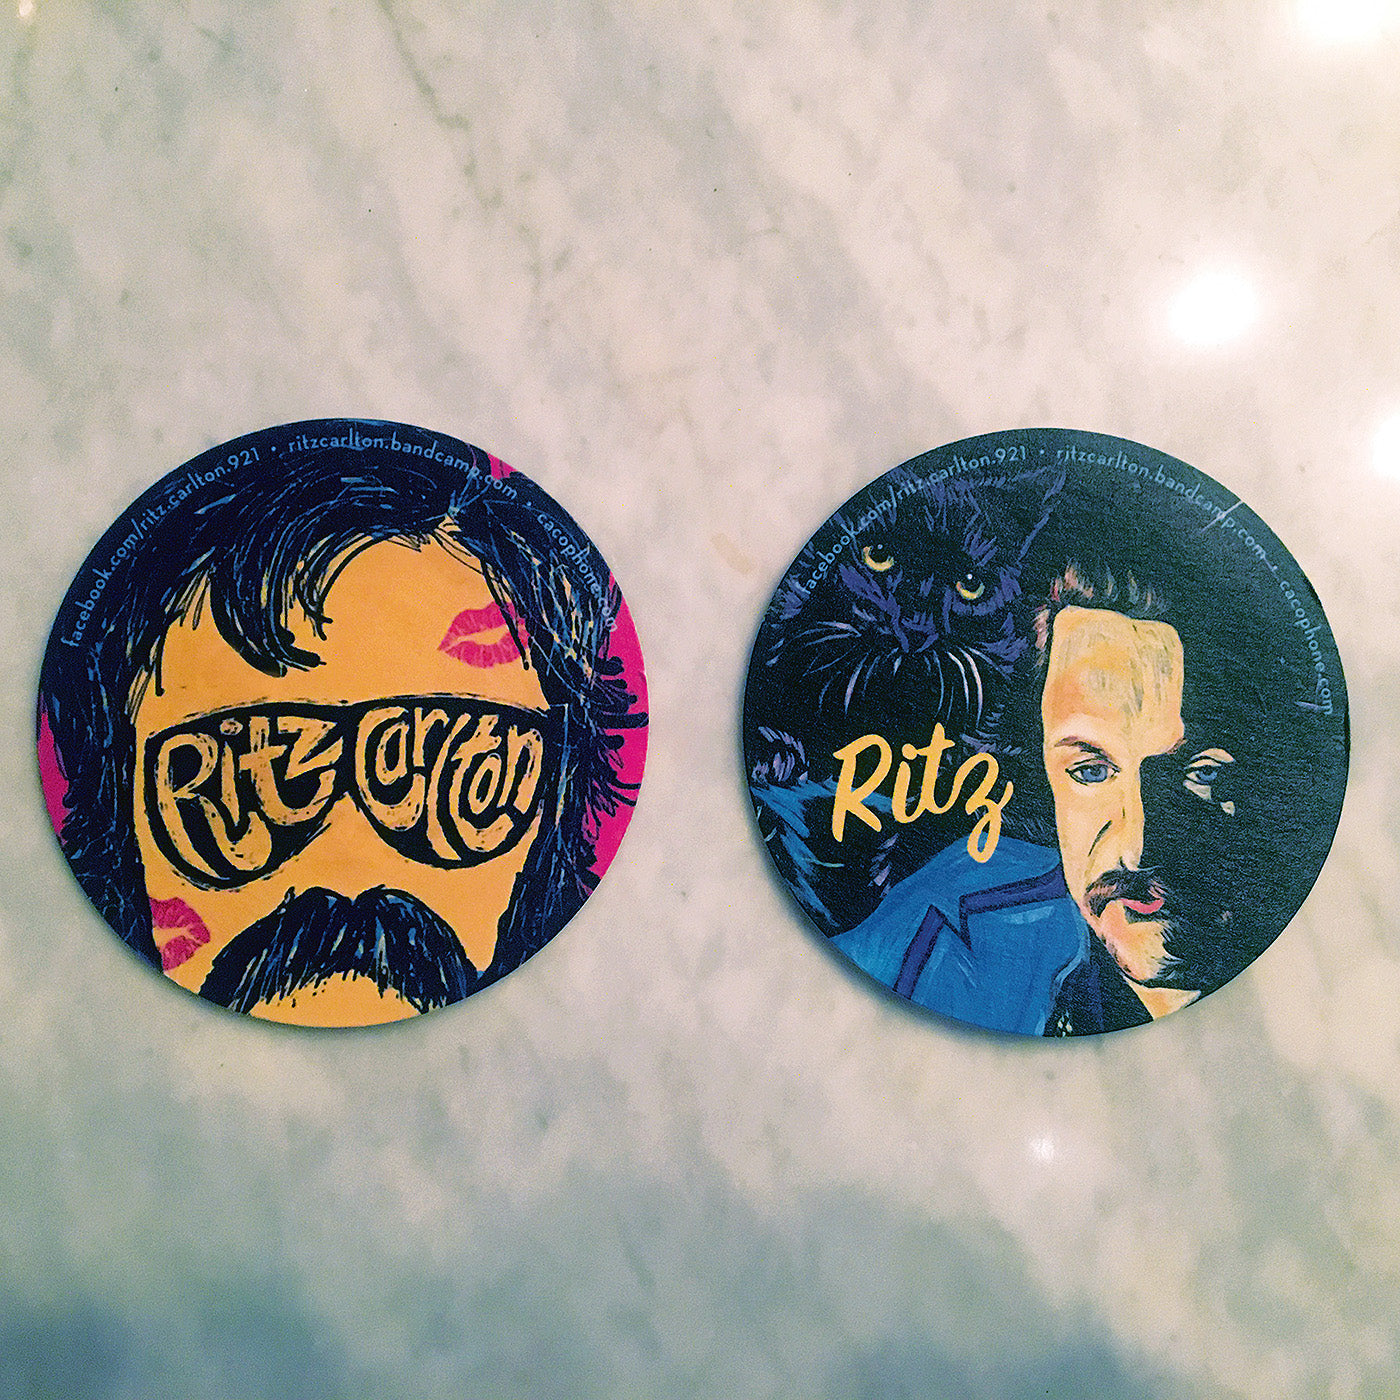 Ritz Carlton - Coasters